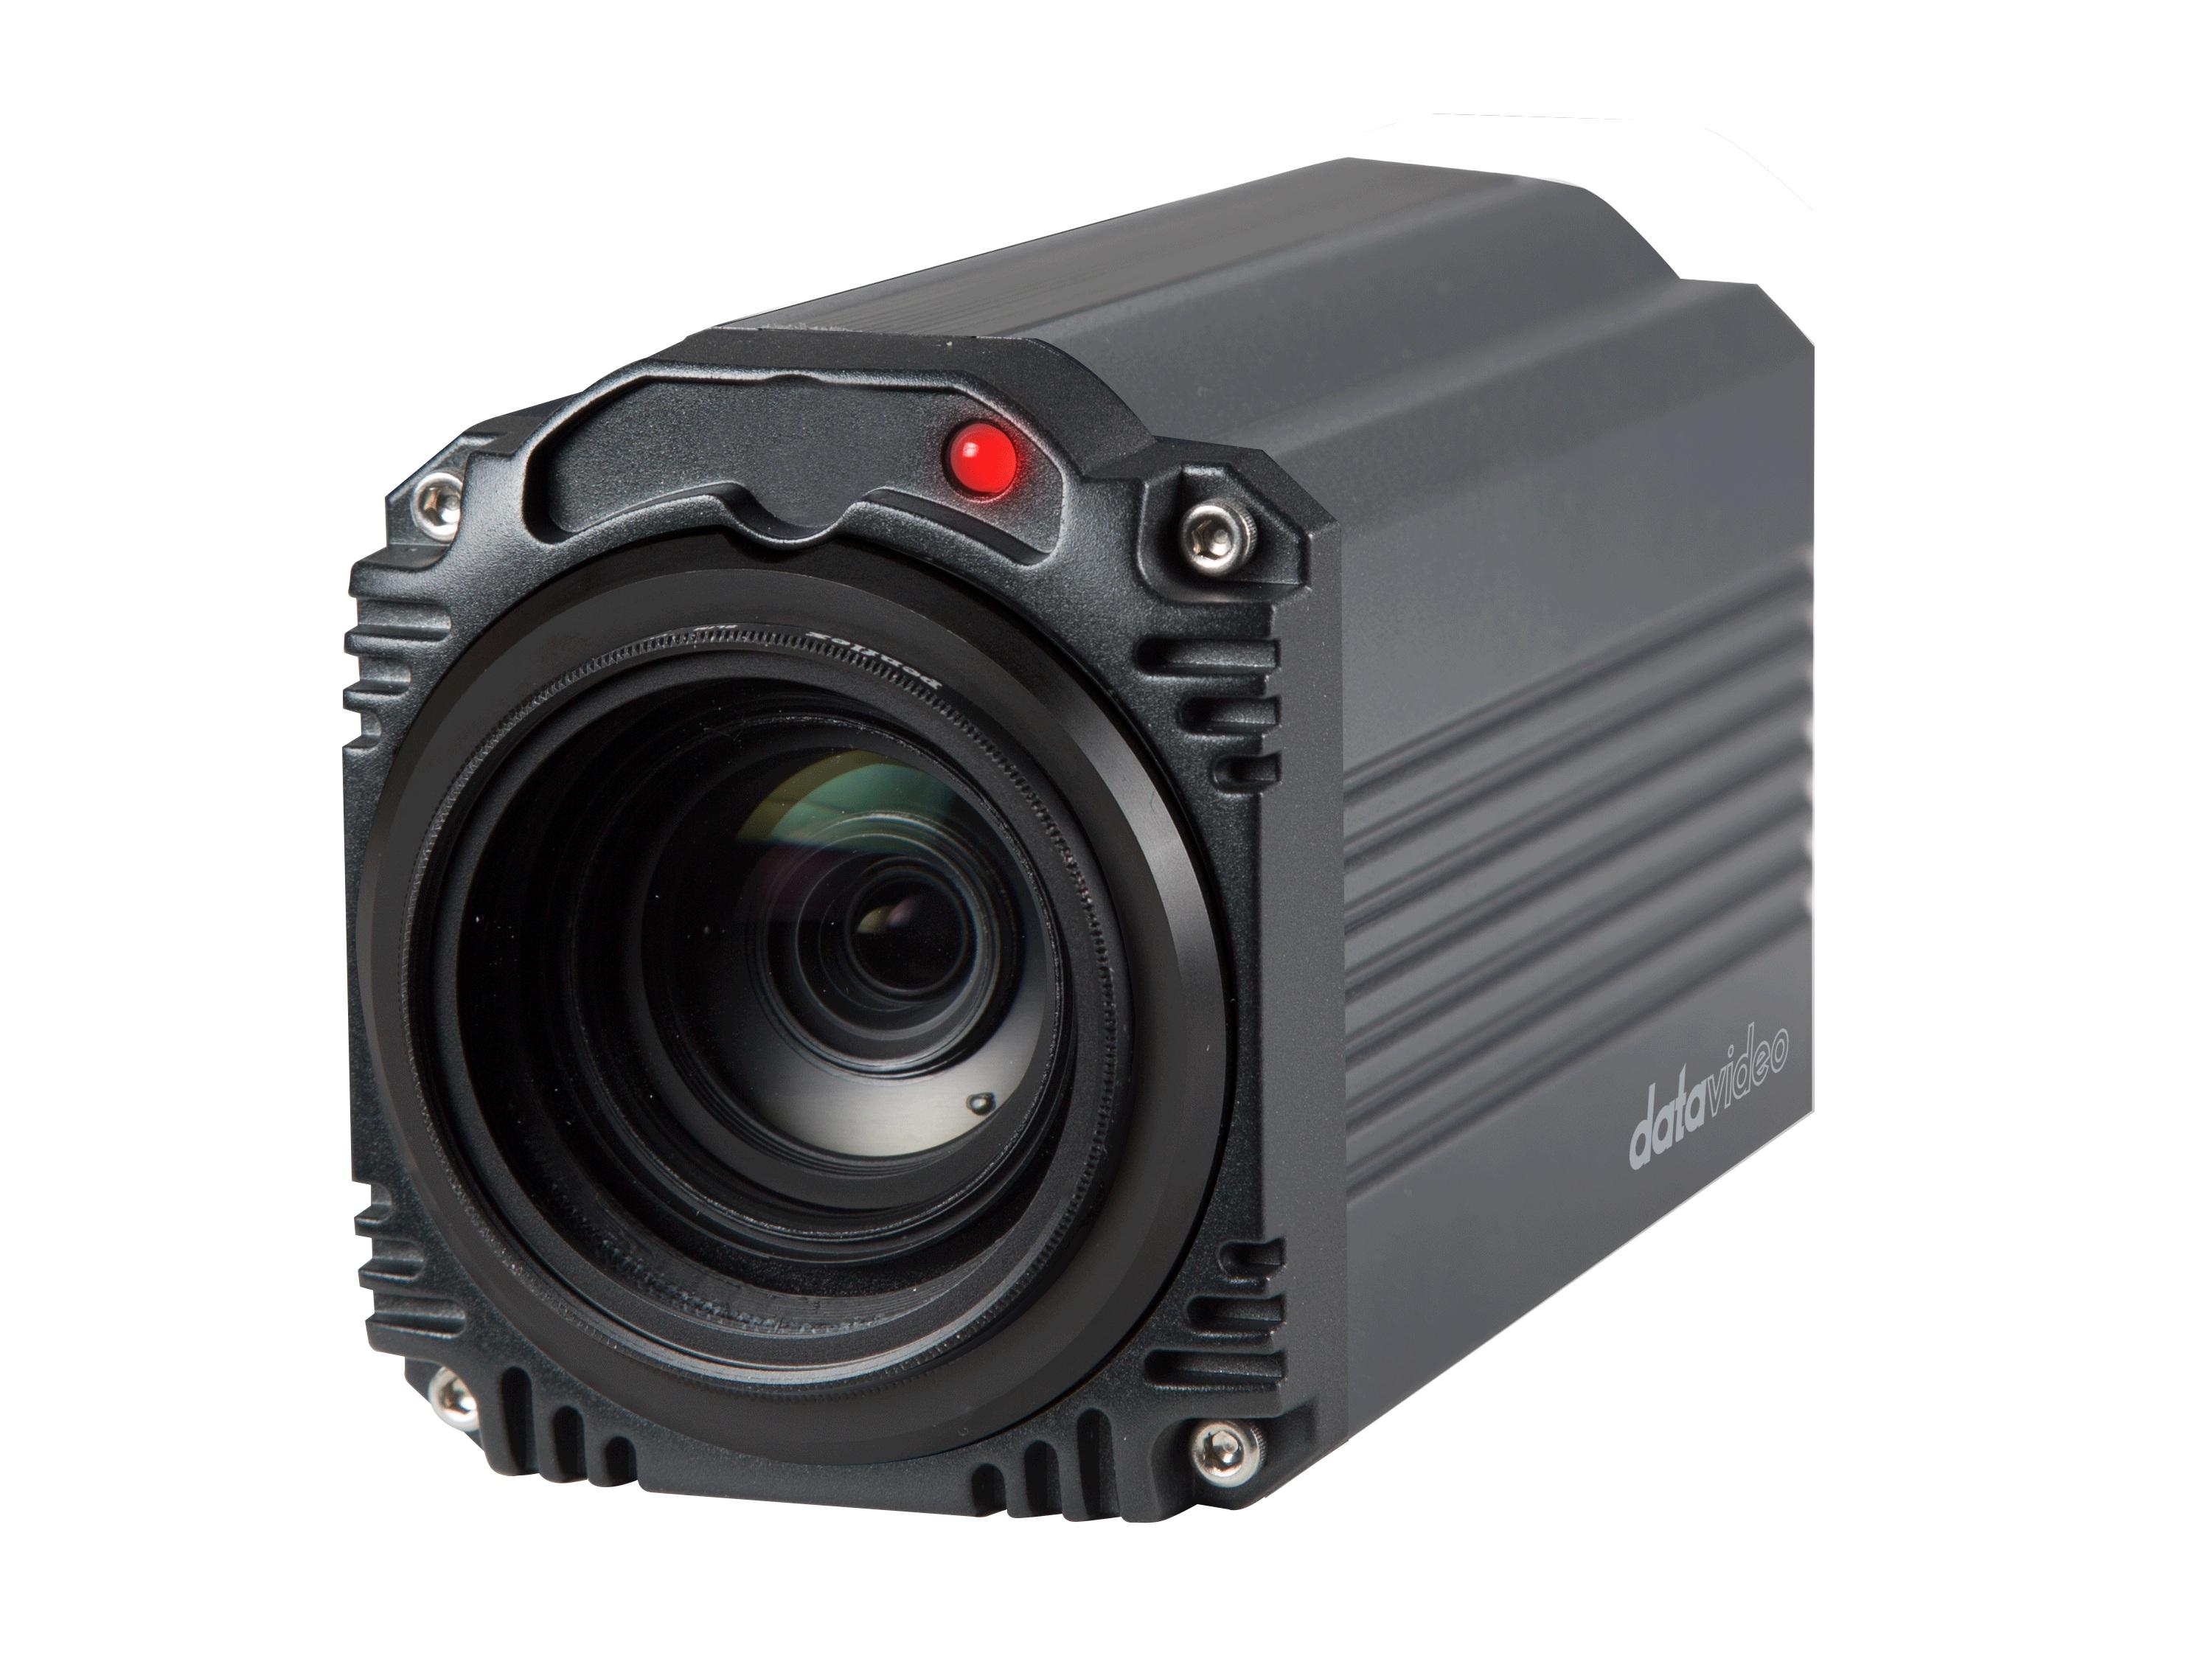 Datavideo BC-50 HD-SDI Block camera with Ethernet